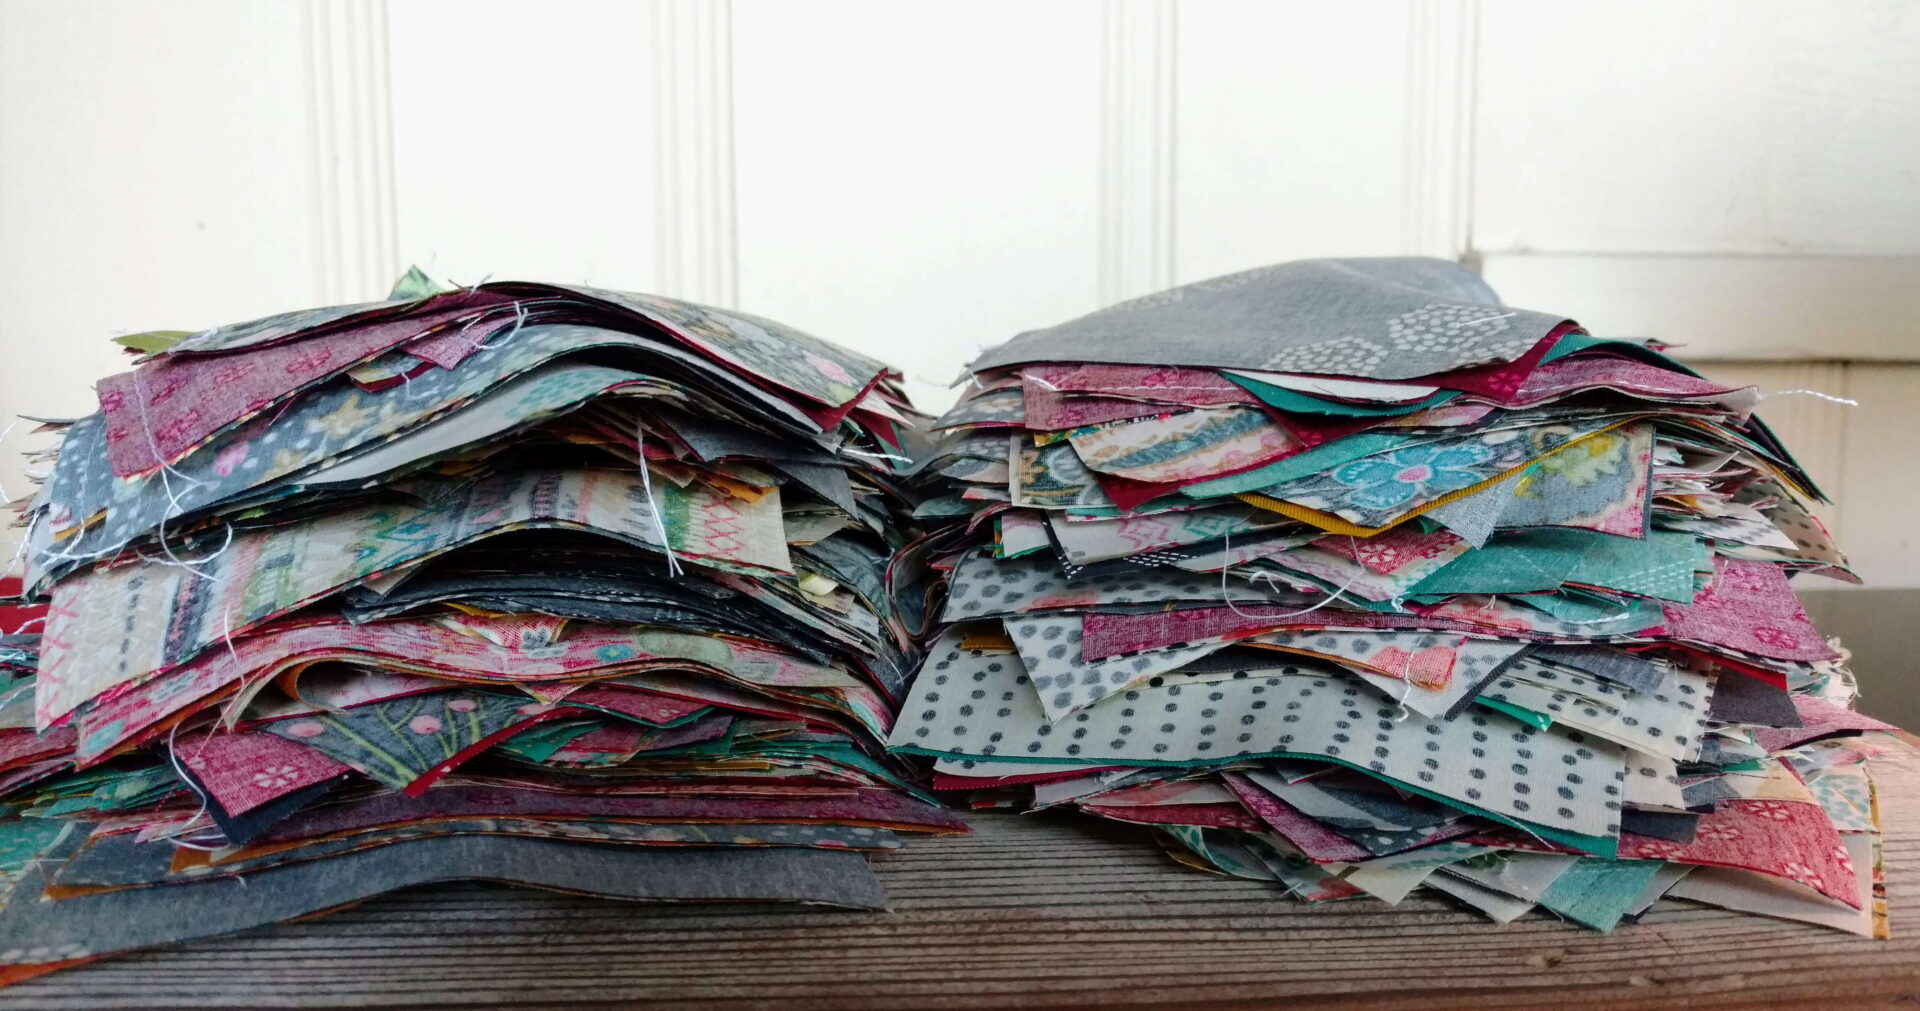 Terrific Quilt Stores Near Me Construction – Gallery Image and ... : quilting store near me - Adamdwight.com